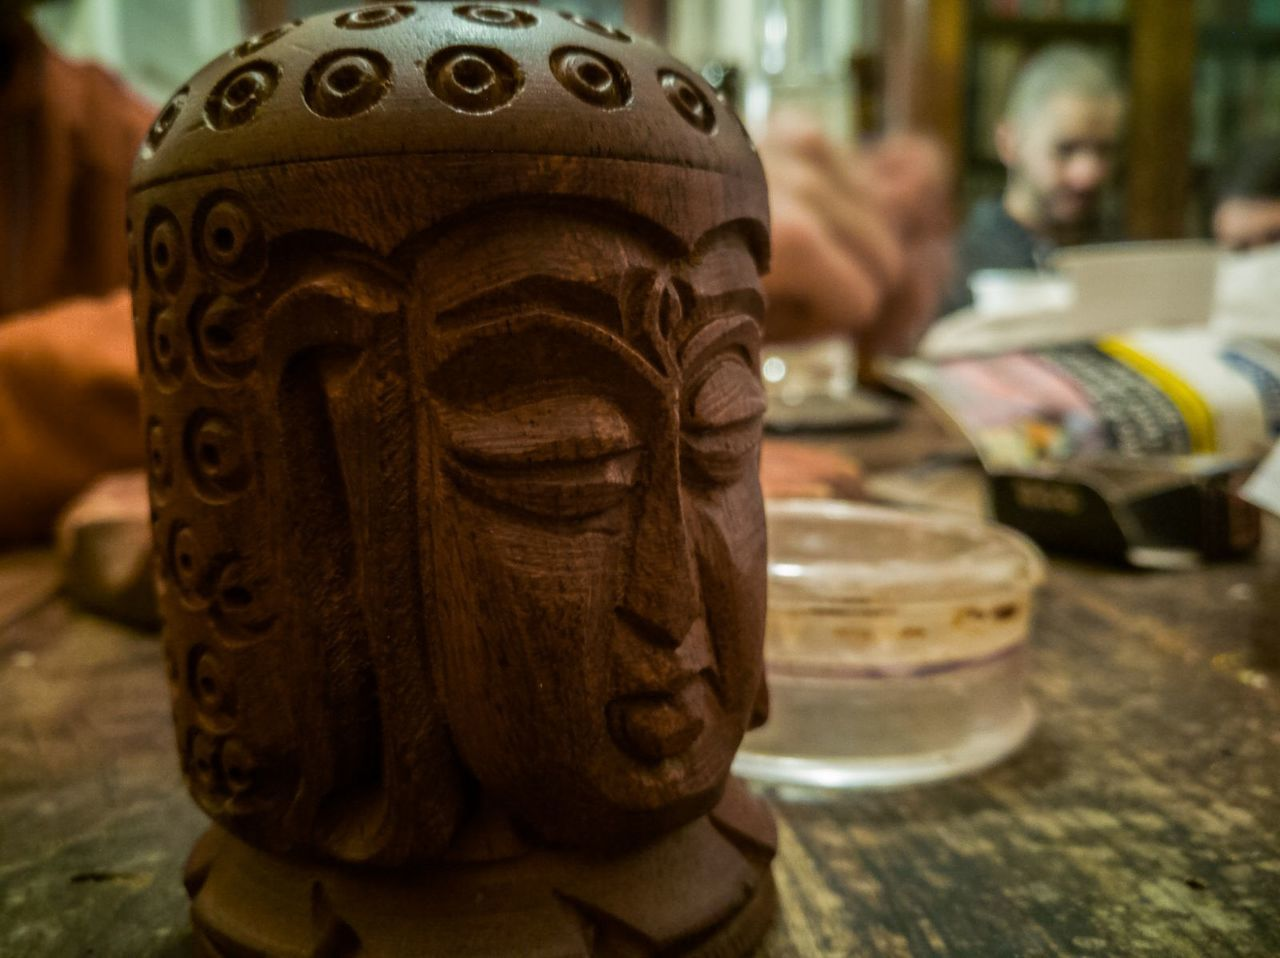 focus on foreground, close-up, religion, table, no people, indoors, sculpture, spirituality, statue, day